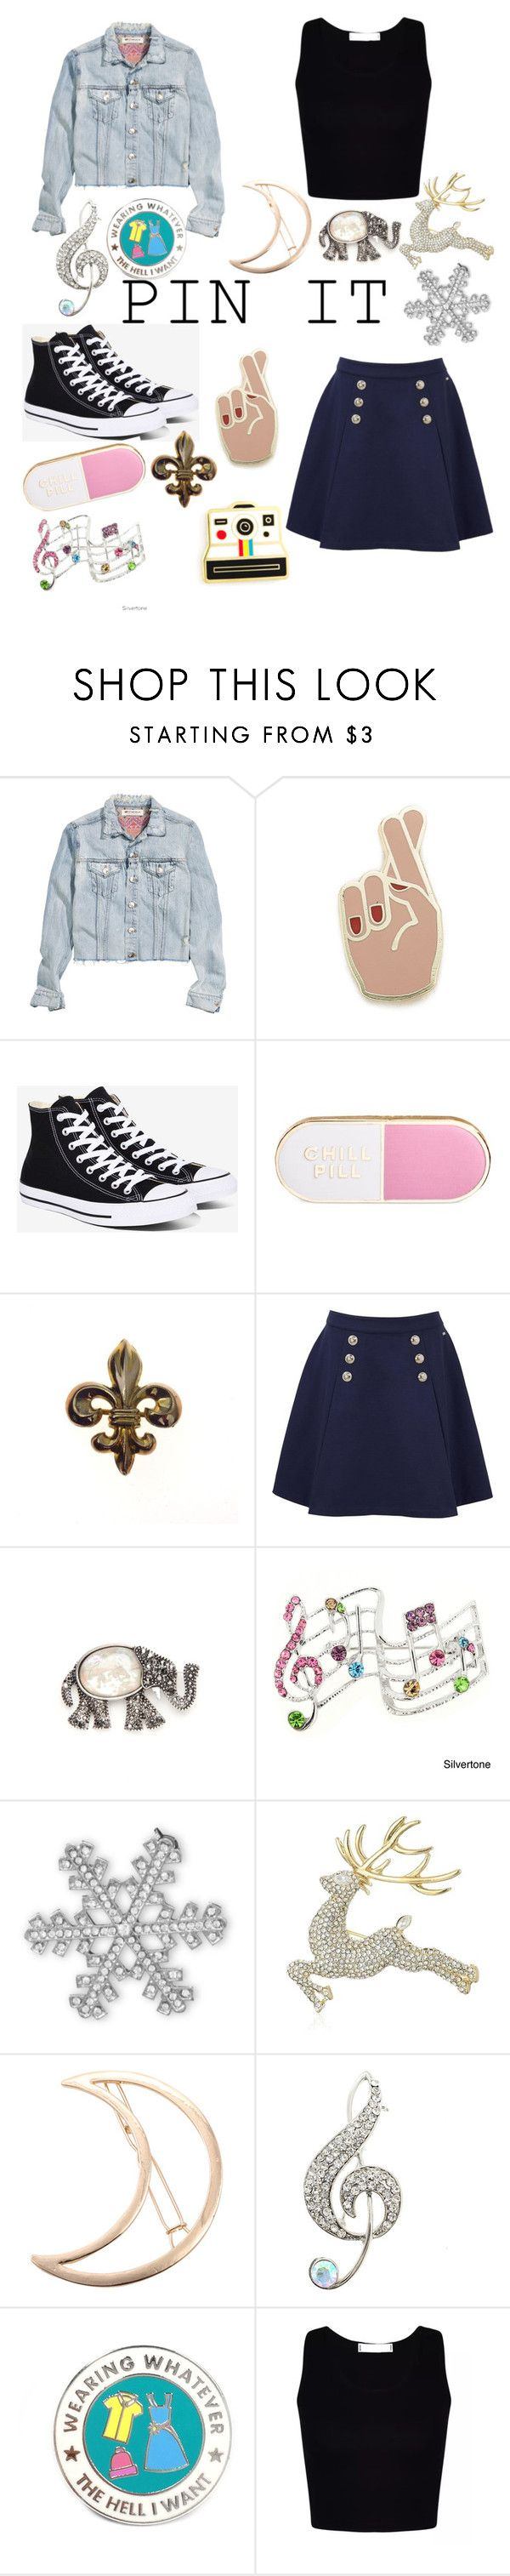 """""""Pin It"""" by brooklyn-bowden ❤ liked on Polyvore featuring H&M, Georgia Perry, Converse, ban.do, Polaroid, Tommy Hilfiger, Kim Rogers, BillyTheTree, Anne Klein and Chicnova Fashion"""